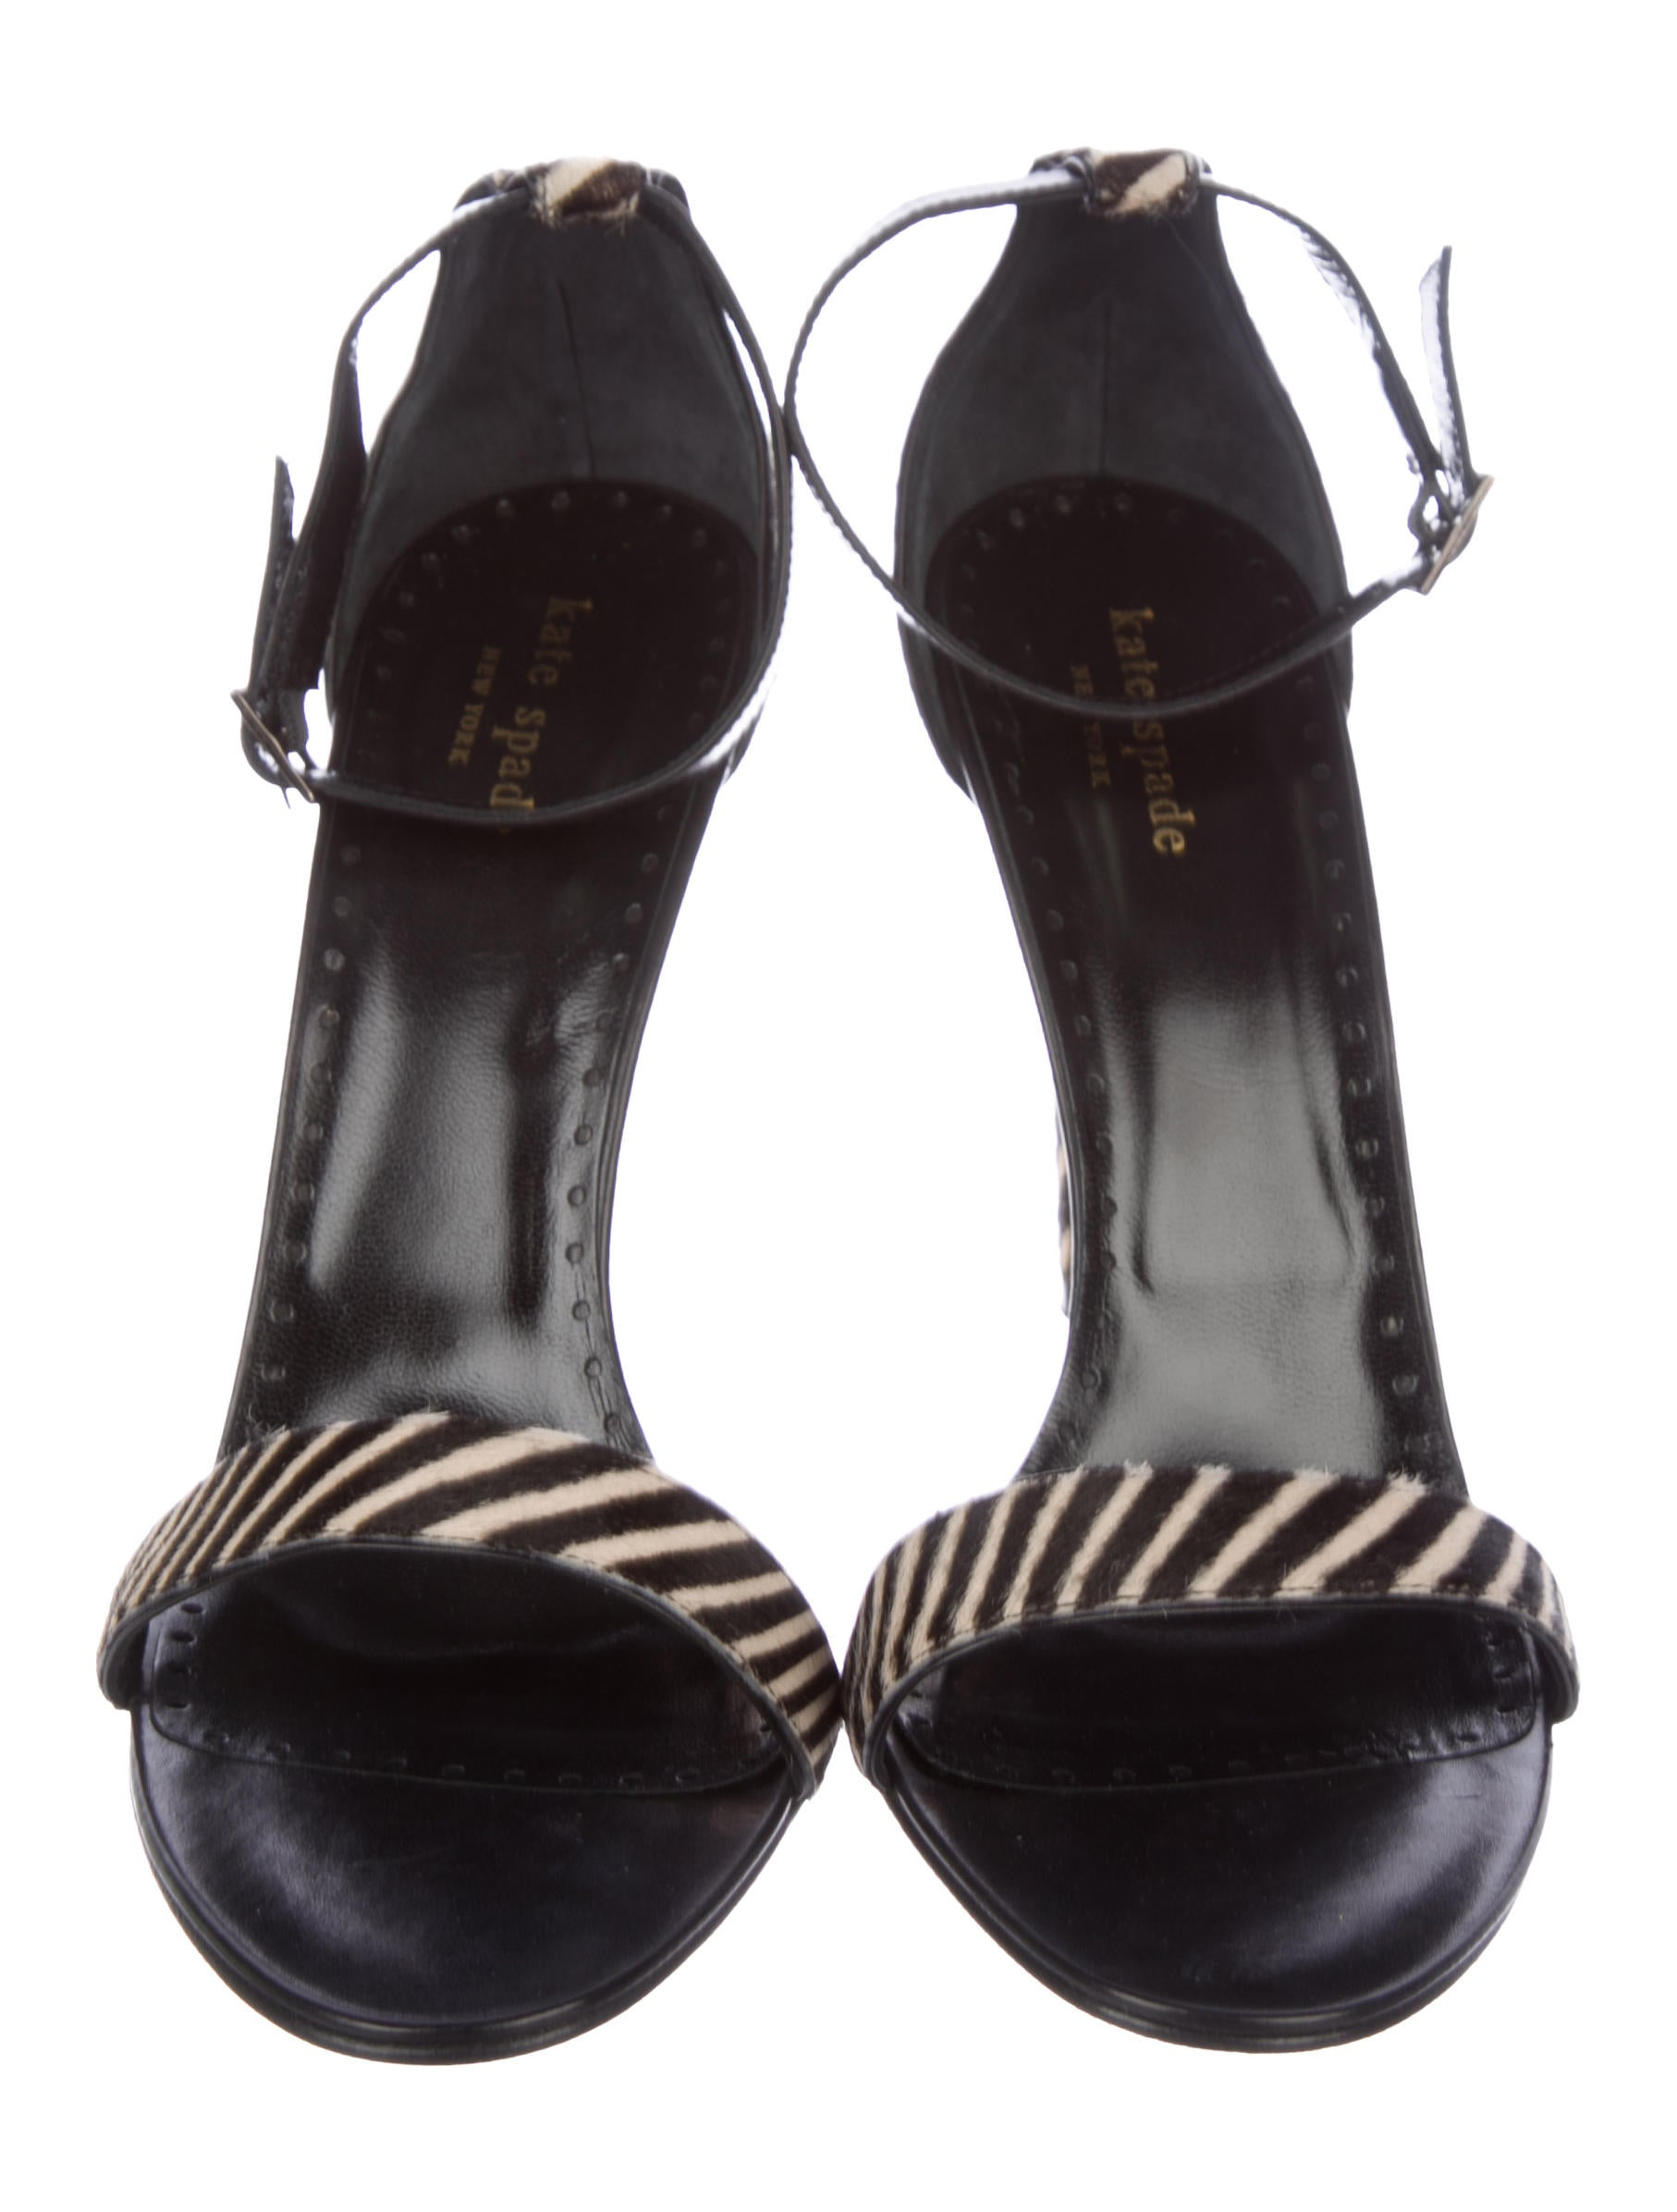 Kate Spade New York Hedy Ponyhair Sandals w/ Tags online shop from china l2nbc687